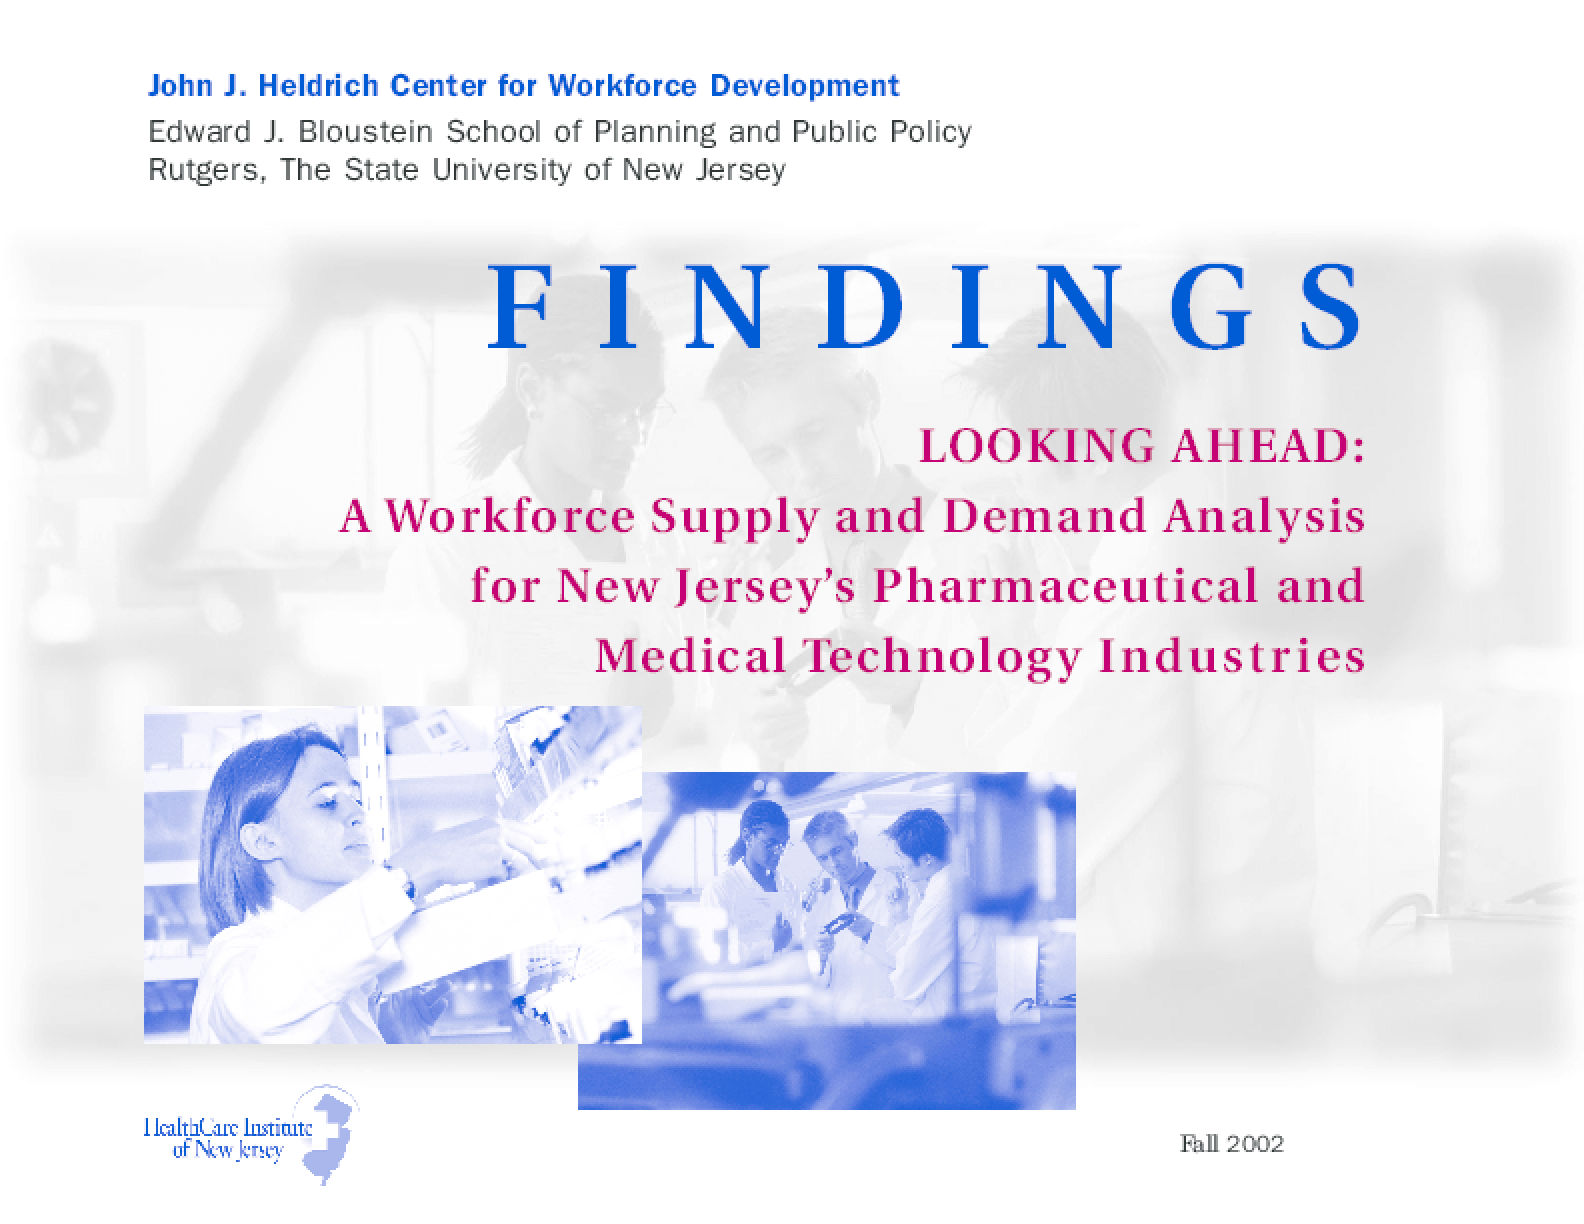 Looking Ahead: Workforce Supply/Demand Analysis for New Jersey's Pharmaceutical and Medical Technology Industries